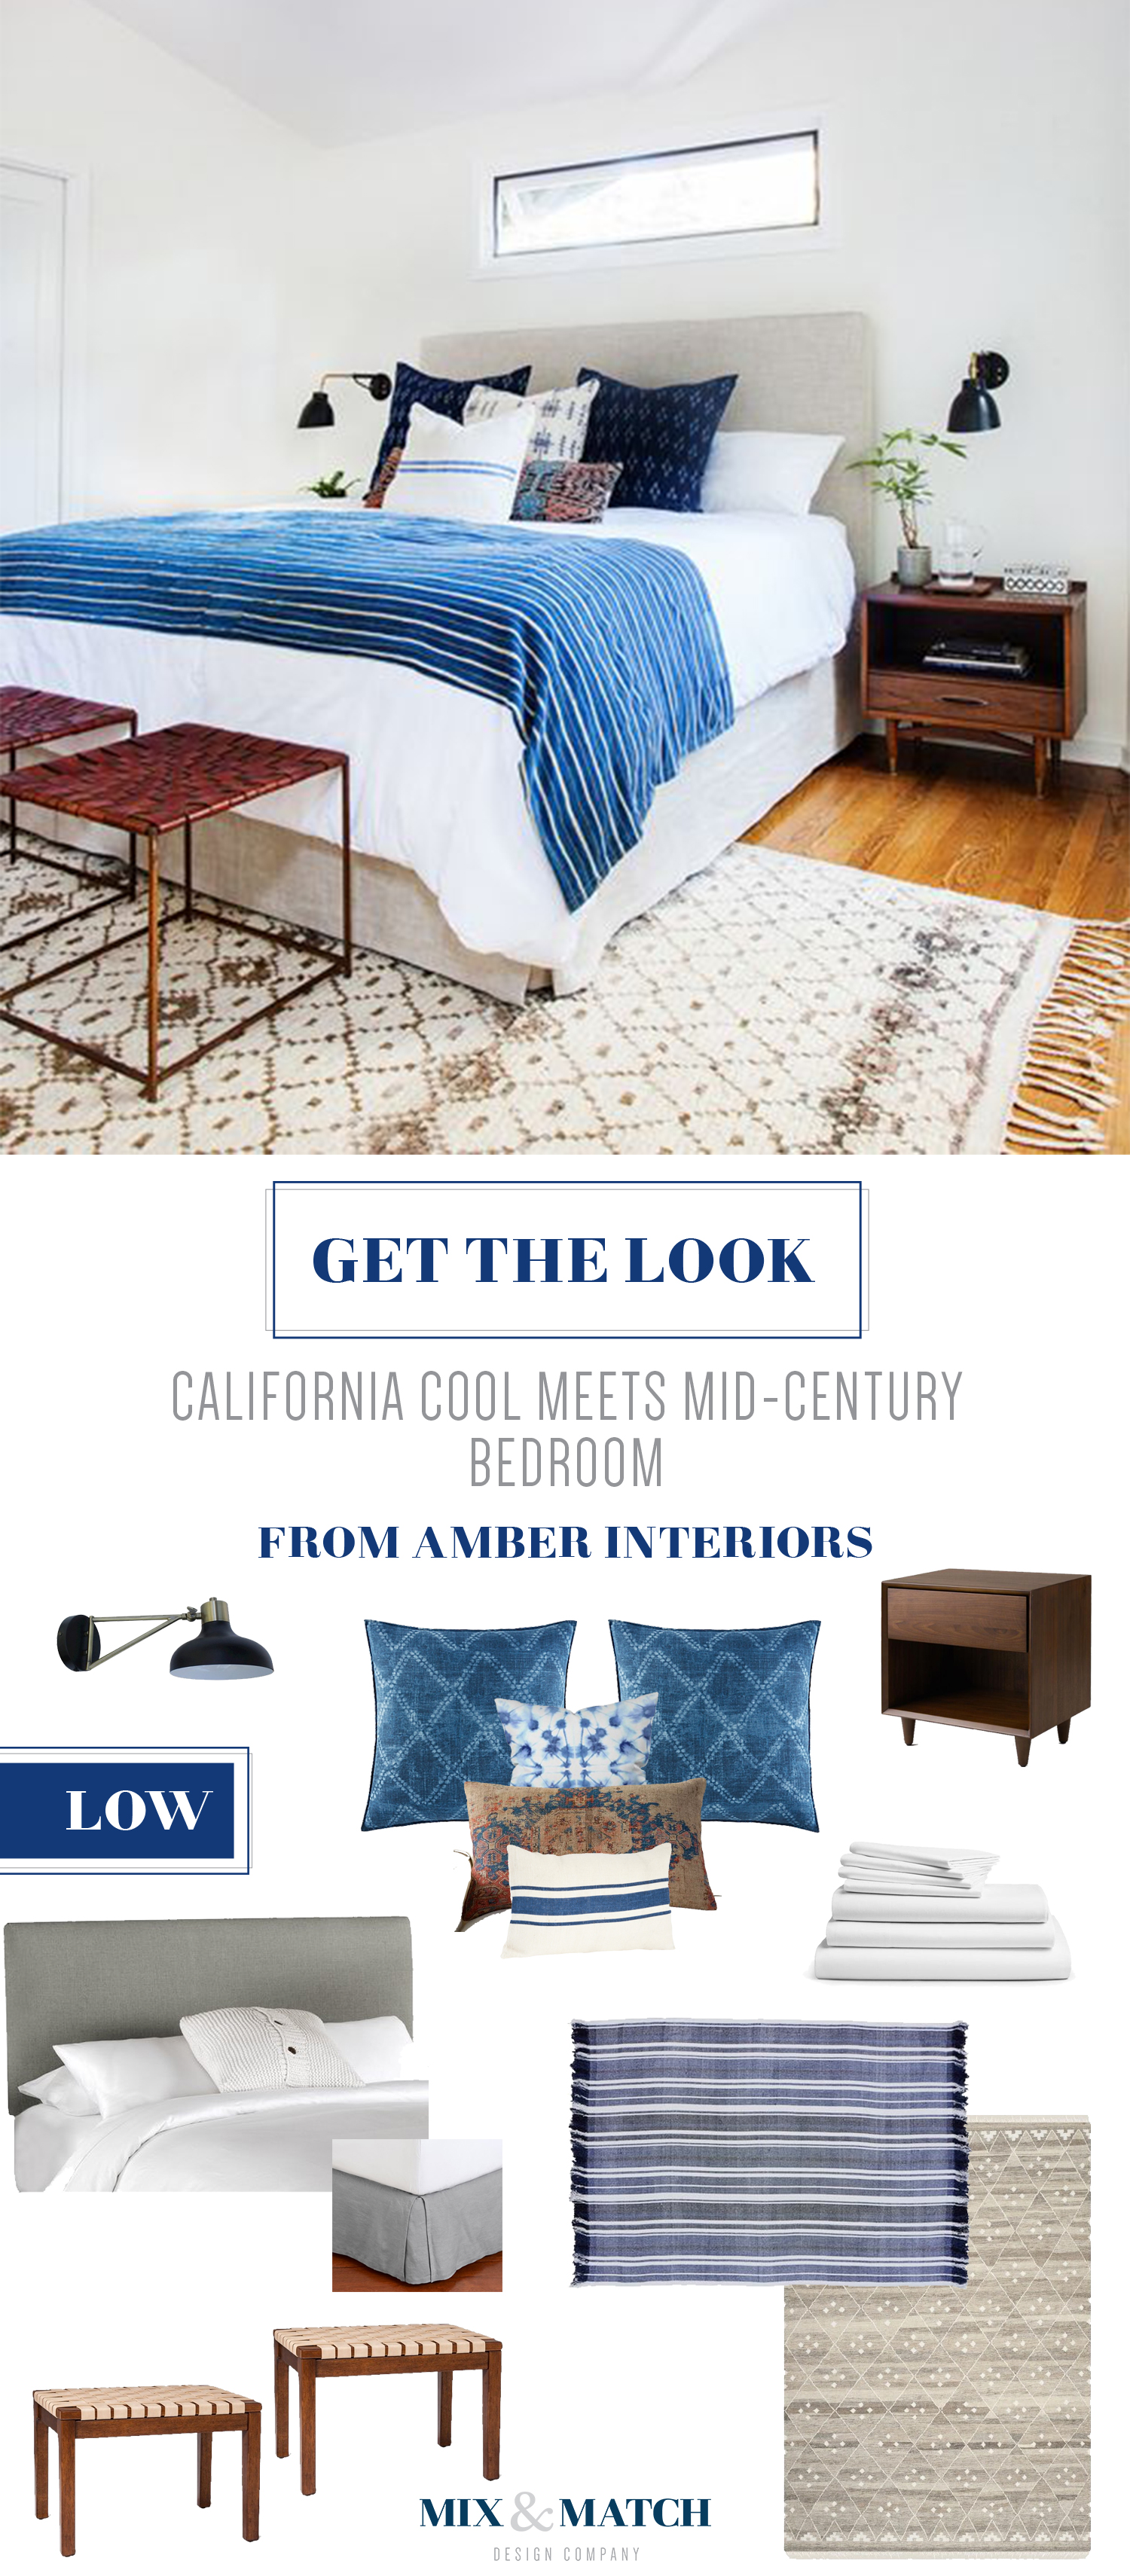 Get the look of this California cool meets mid-century bedroom from Amber Interiors.Indigo, shibori and neutrals come together to create a cozy space.Shop the pieces on the Mix & Match blog!